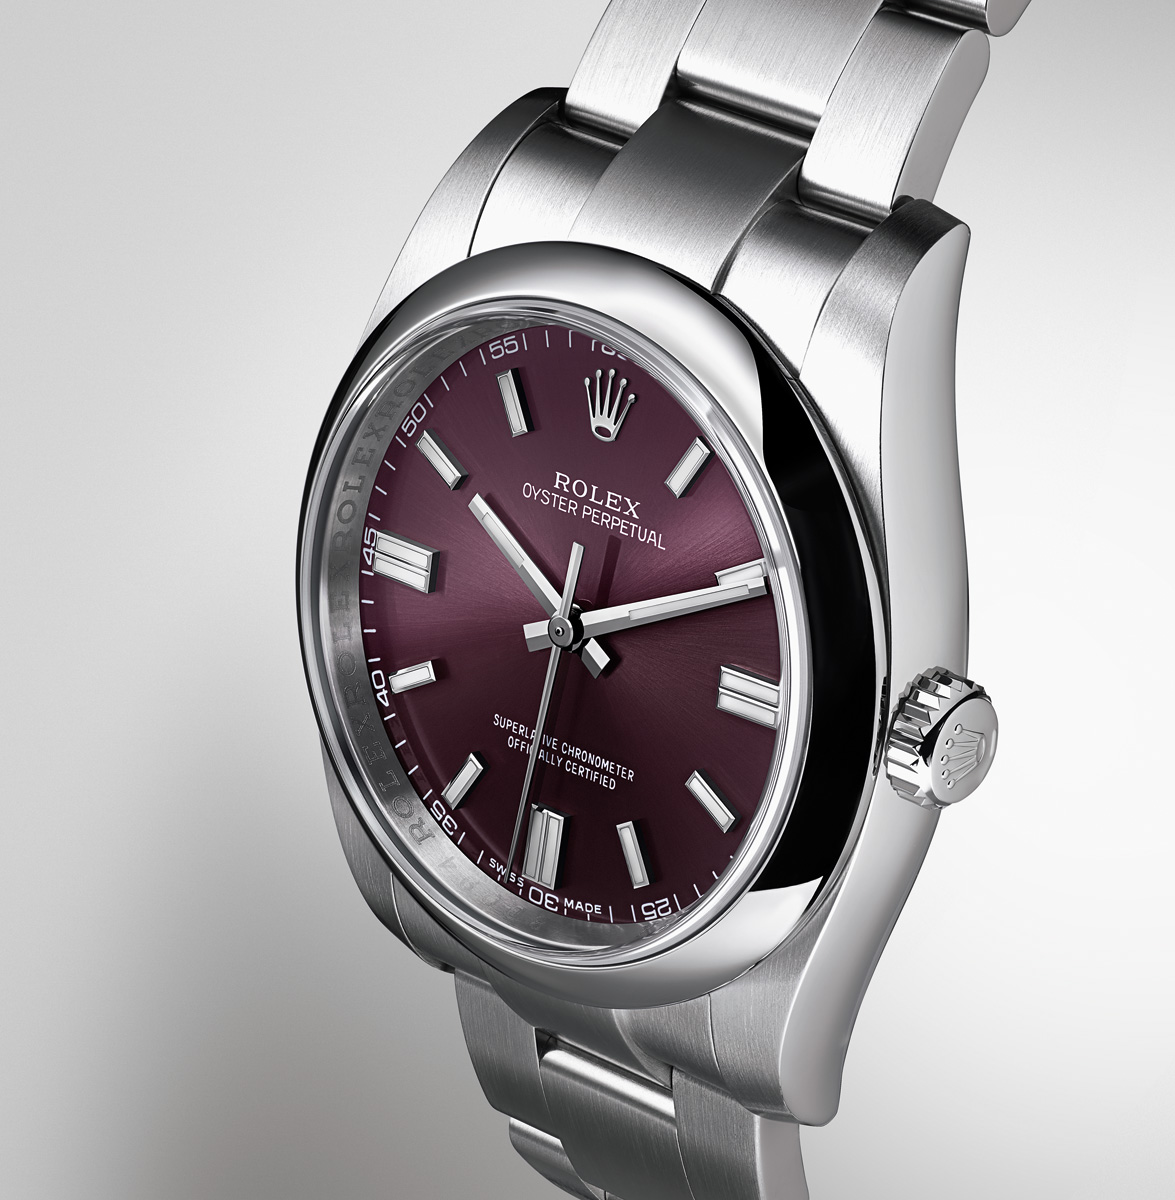 bed29bb003a Rolex Oyster Perpetual 116000 Baselworld 2014 (2) - HisPotion